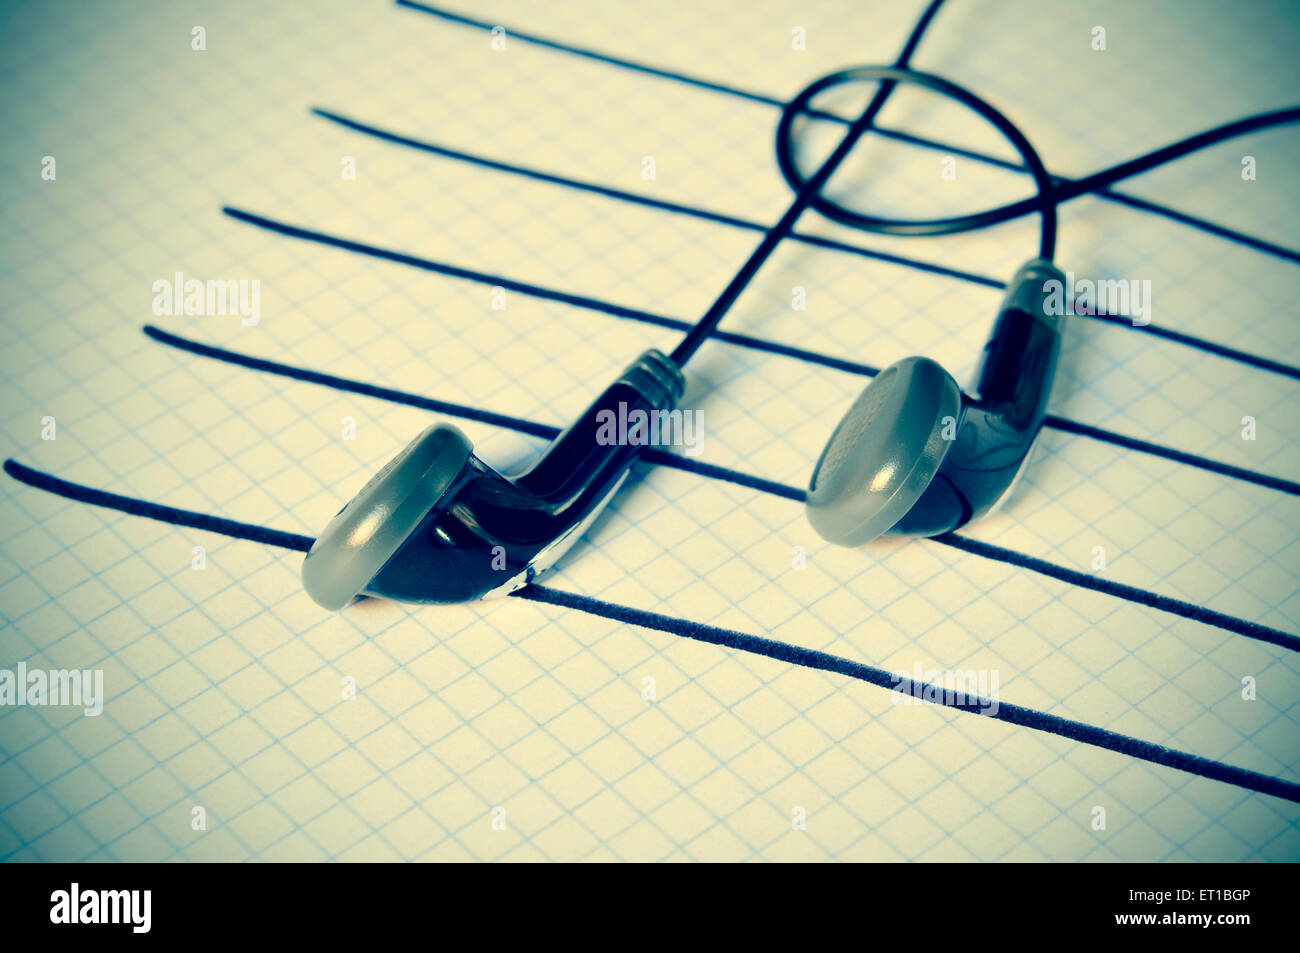 a pair of earphones placed on a staff drawn on a notepad simulating musical notes, with a slight vignette added - Stock Image